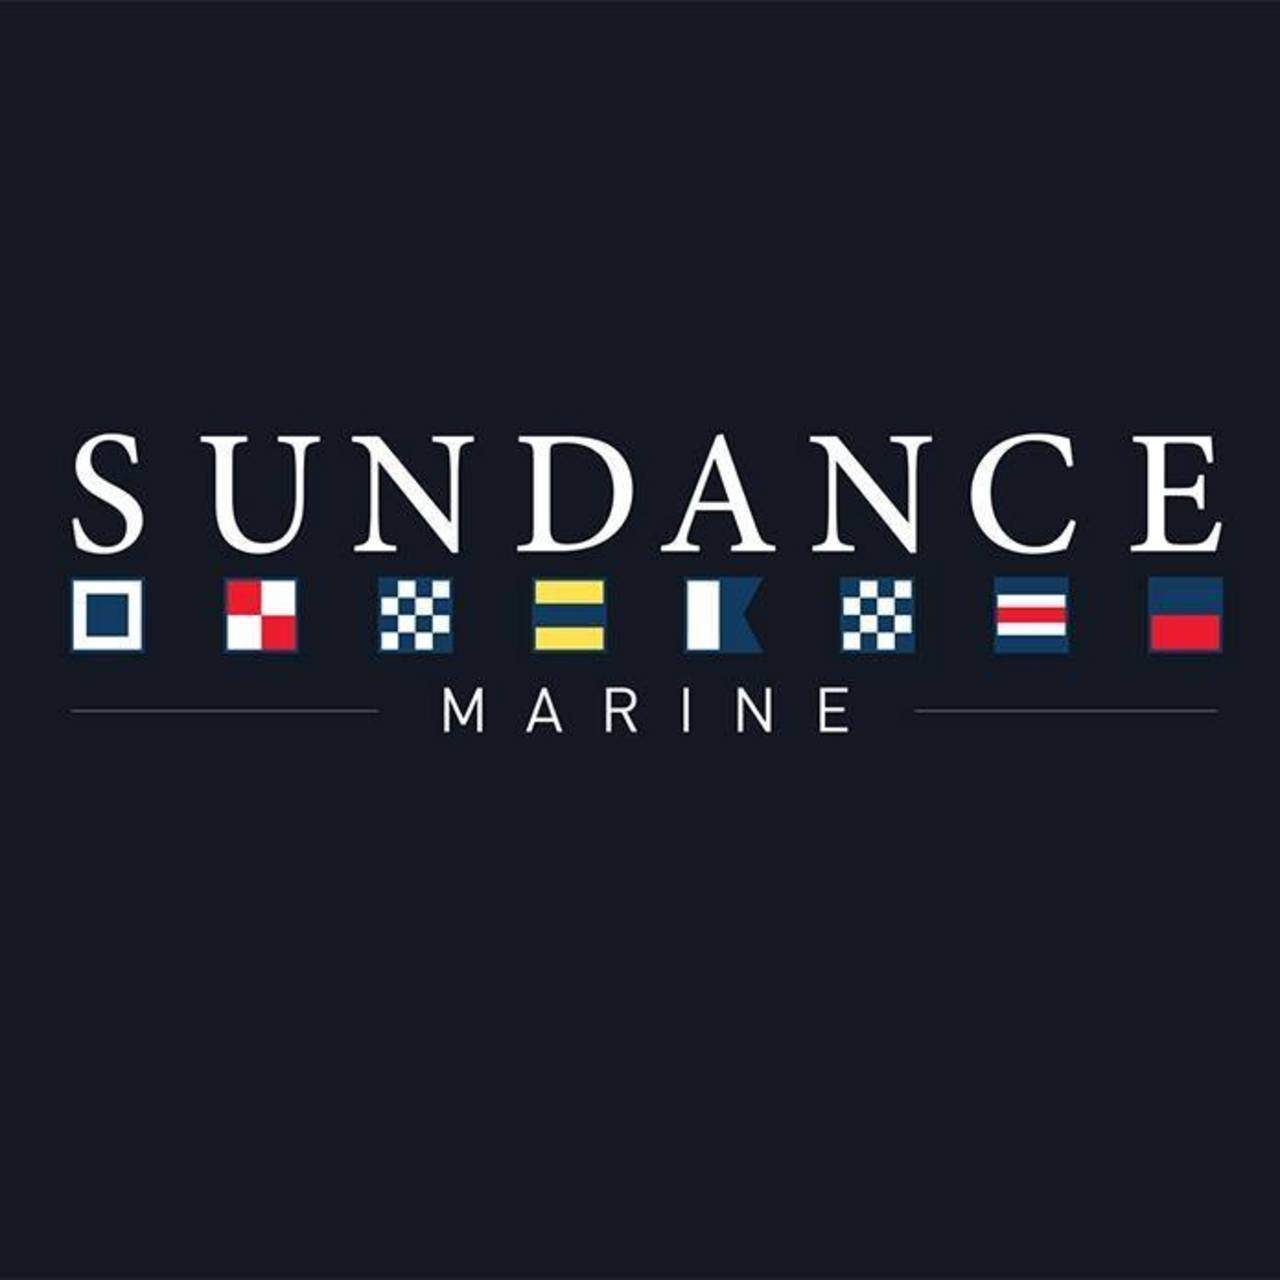 SUNDANCE MARINE WILLIAMSTOWN OFFICE